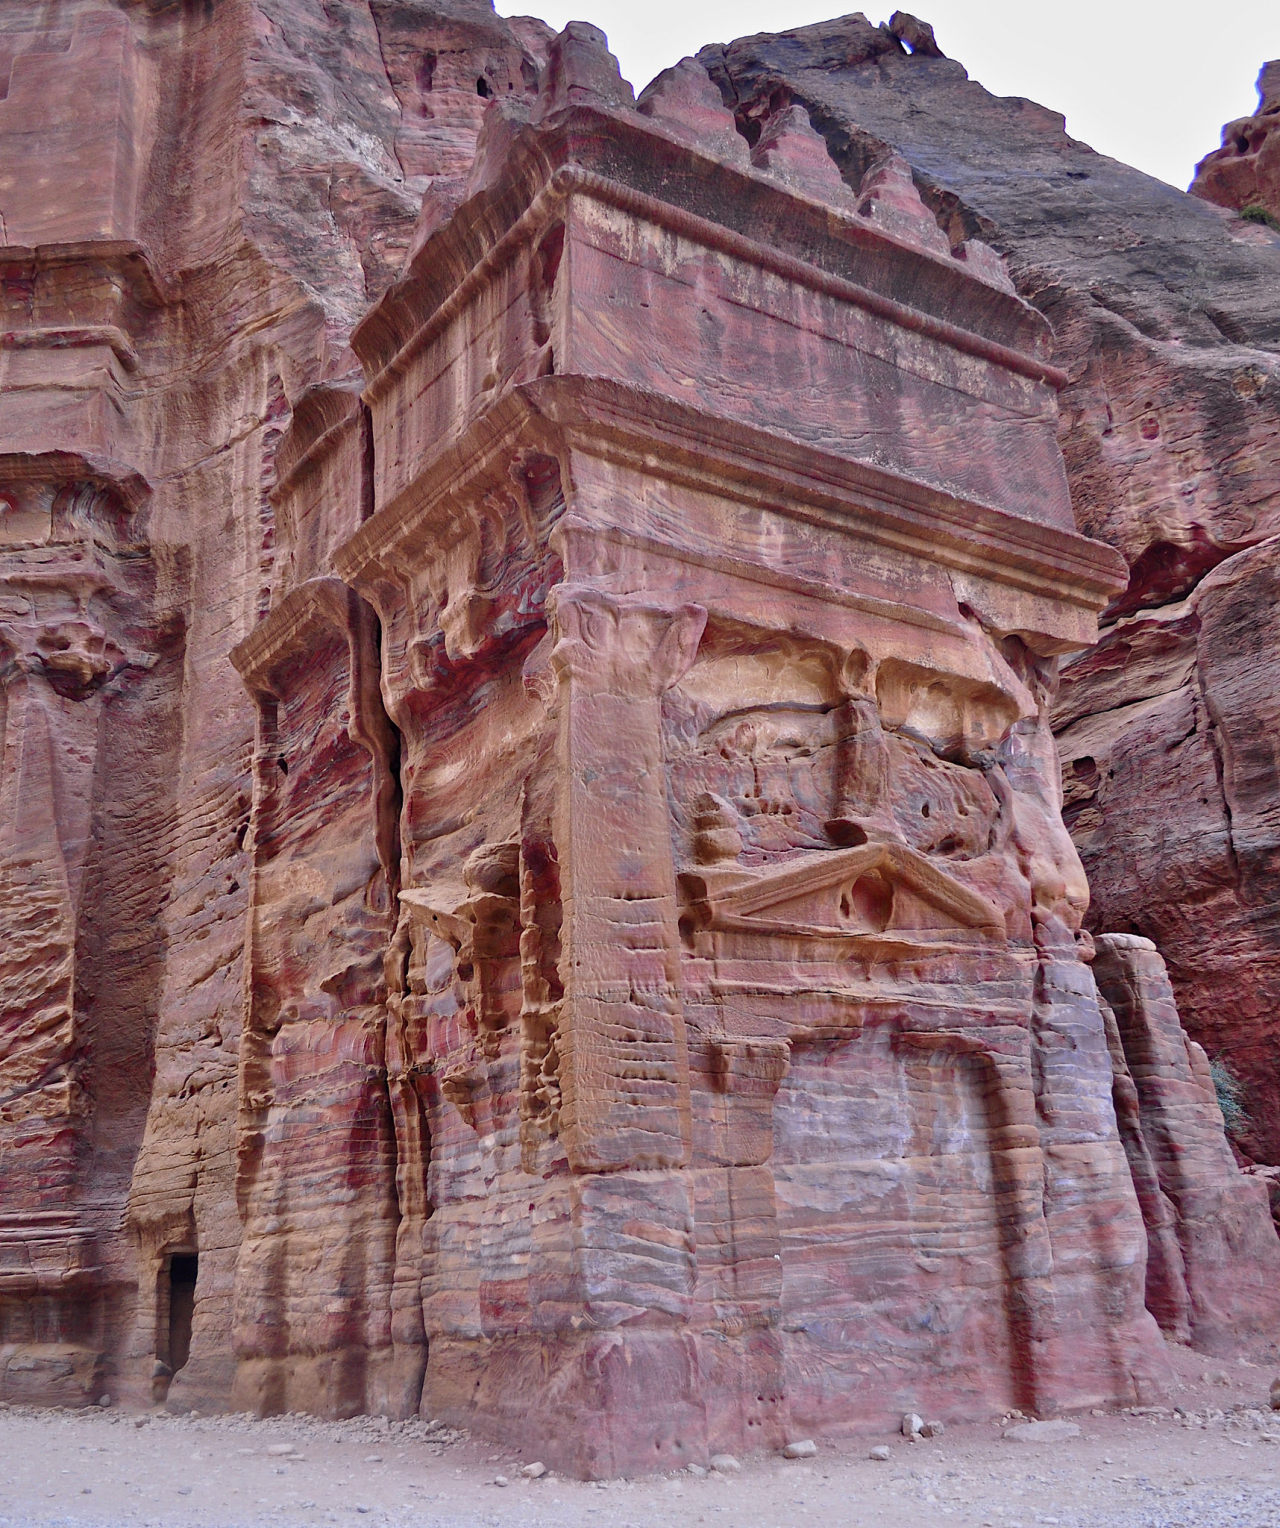 The red rock carved tombs of Petra / Jordan